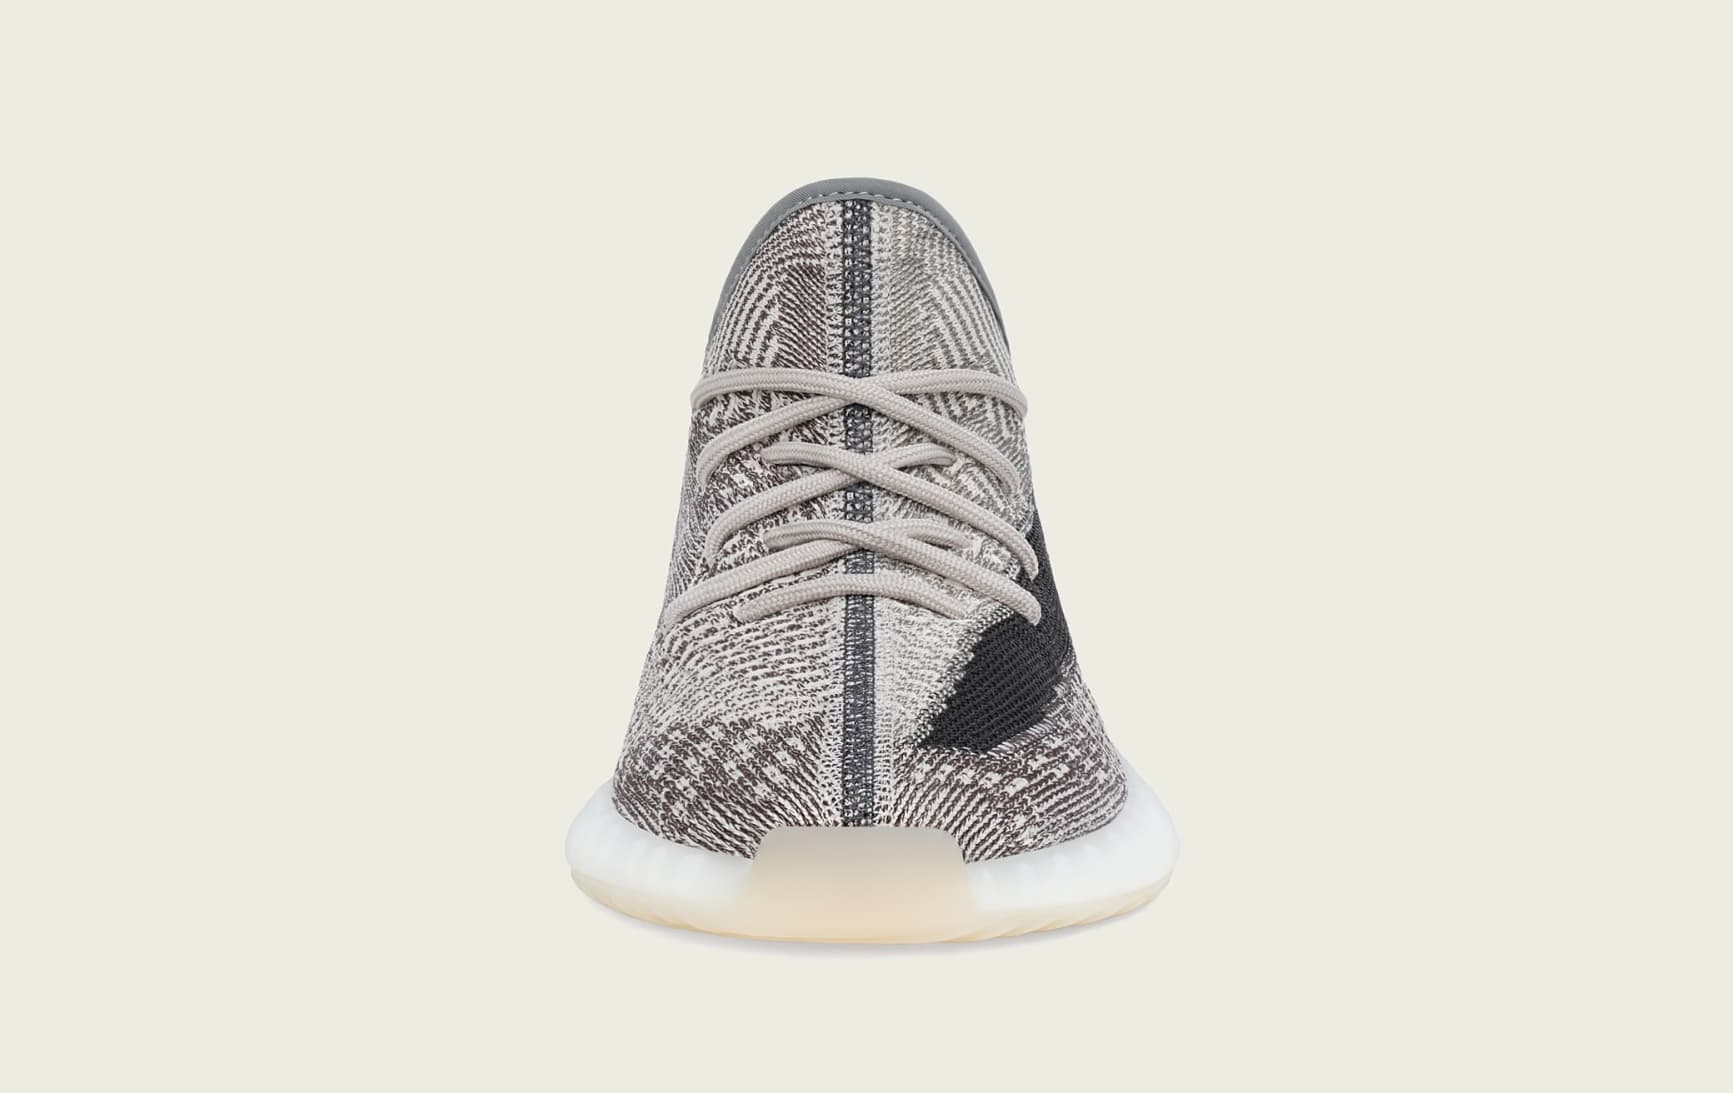 Adidas Yeezy Boost 350 V2 'Zyon' FZ1267 Front